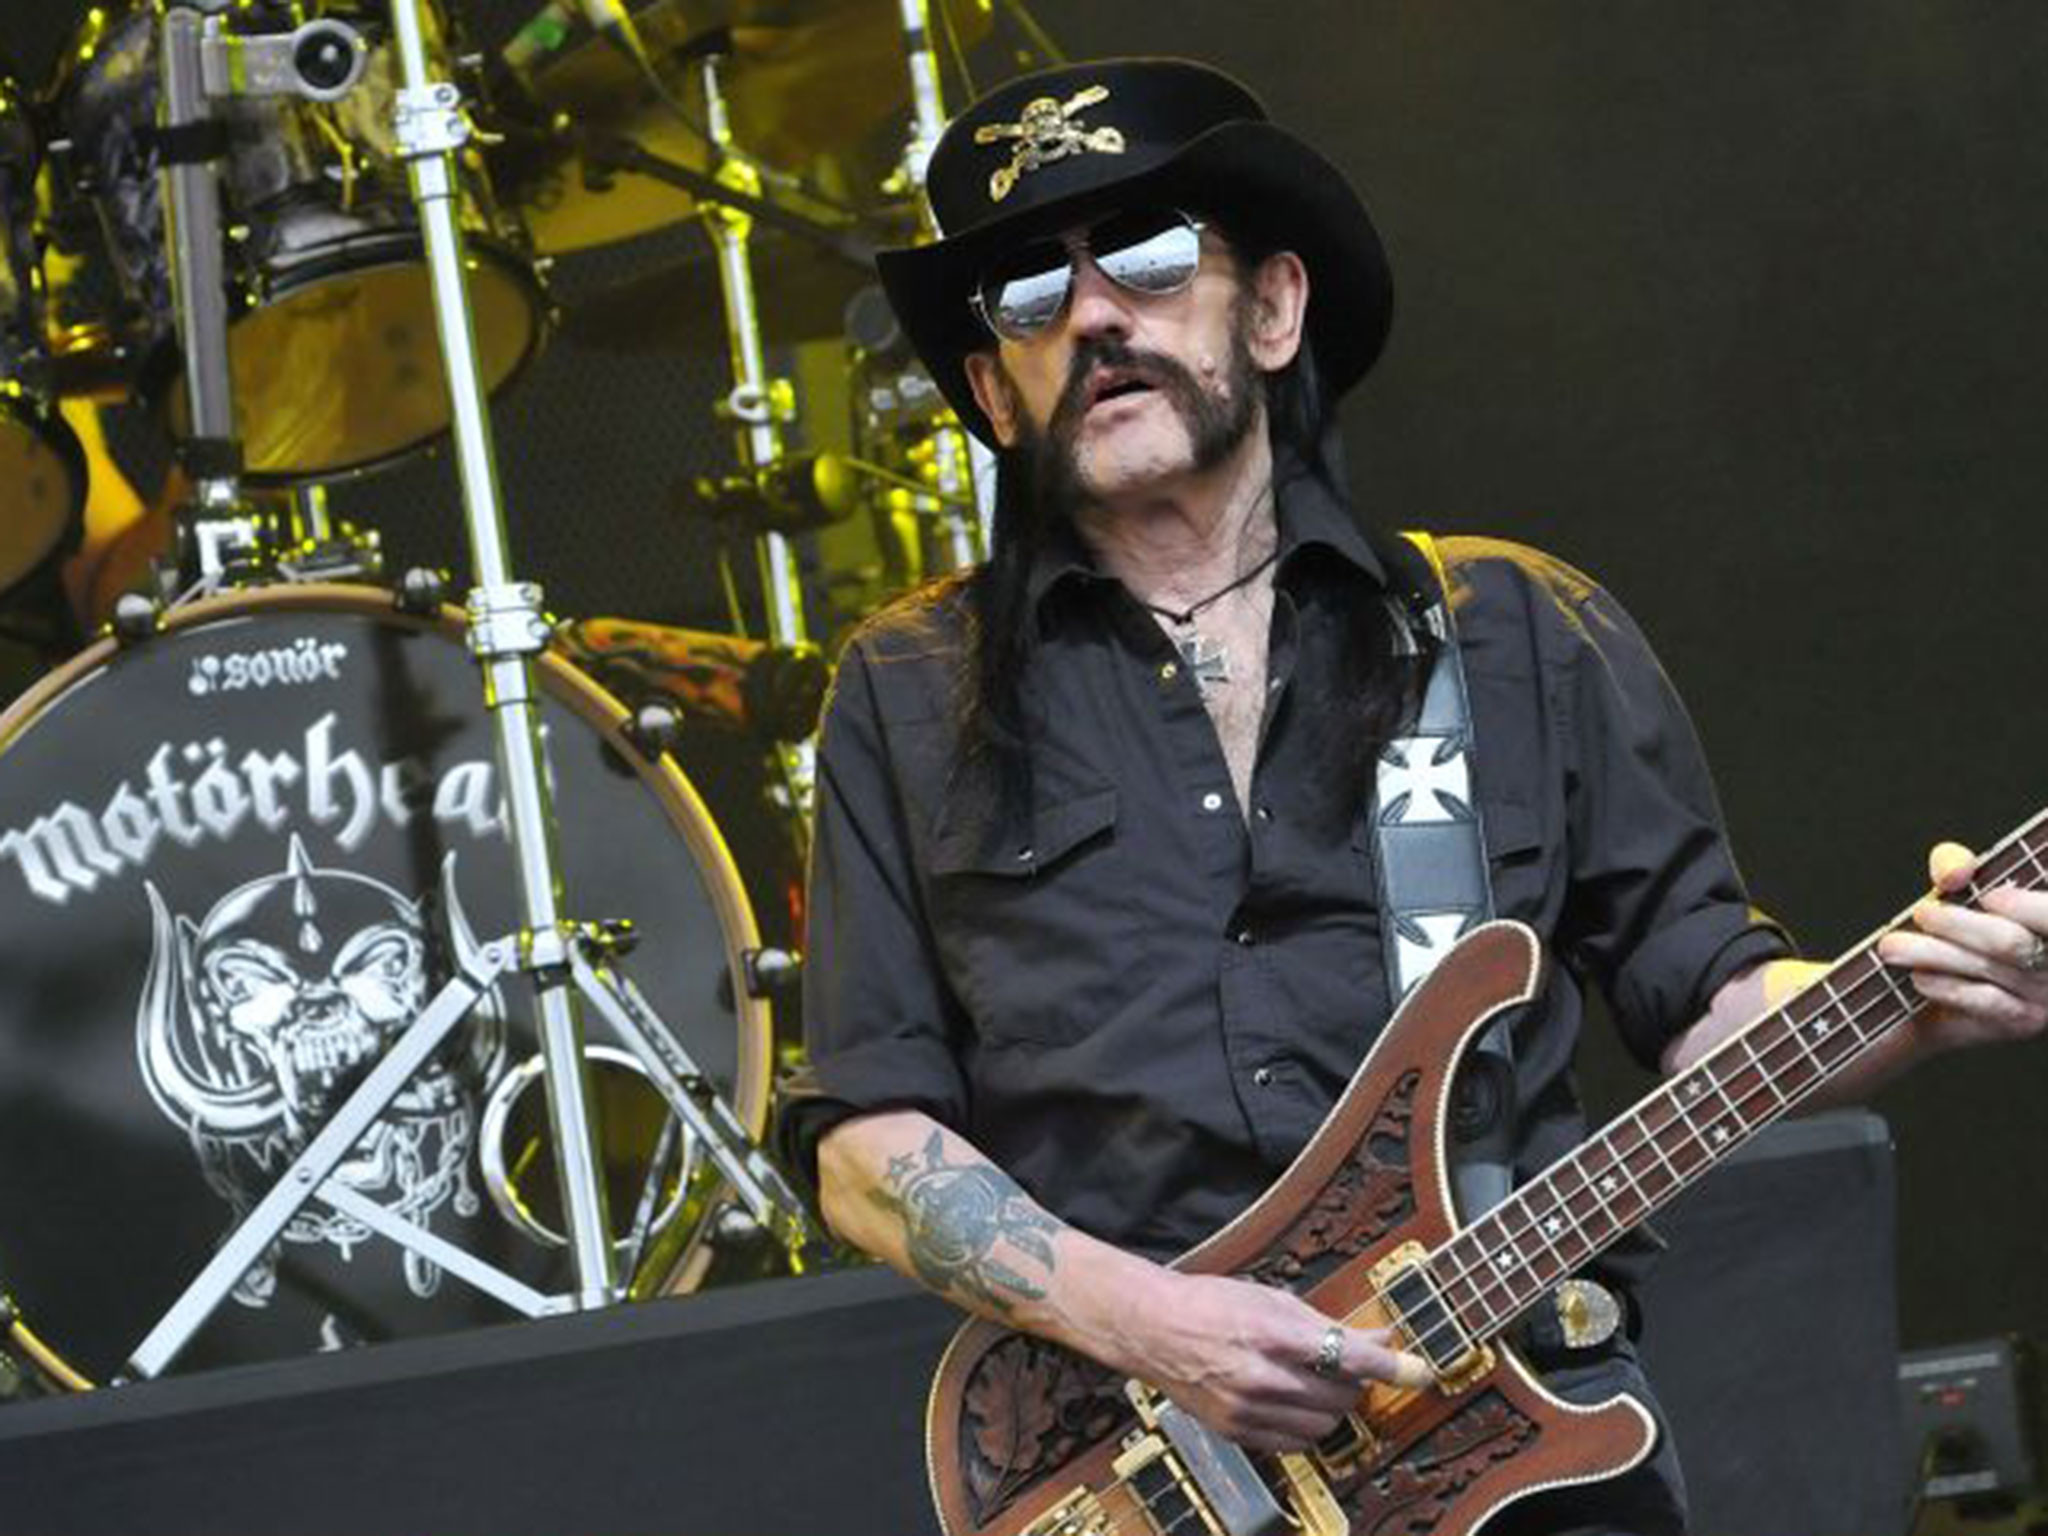 Lemmy Kilmister dead: Motorhead will not tour or release new albums after  frontman's death, drummer confirms | The Independent